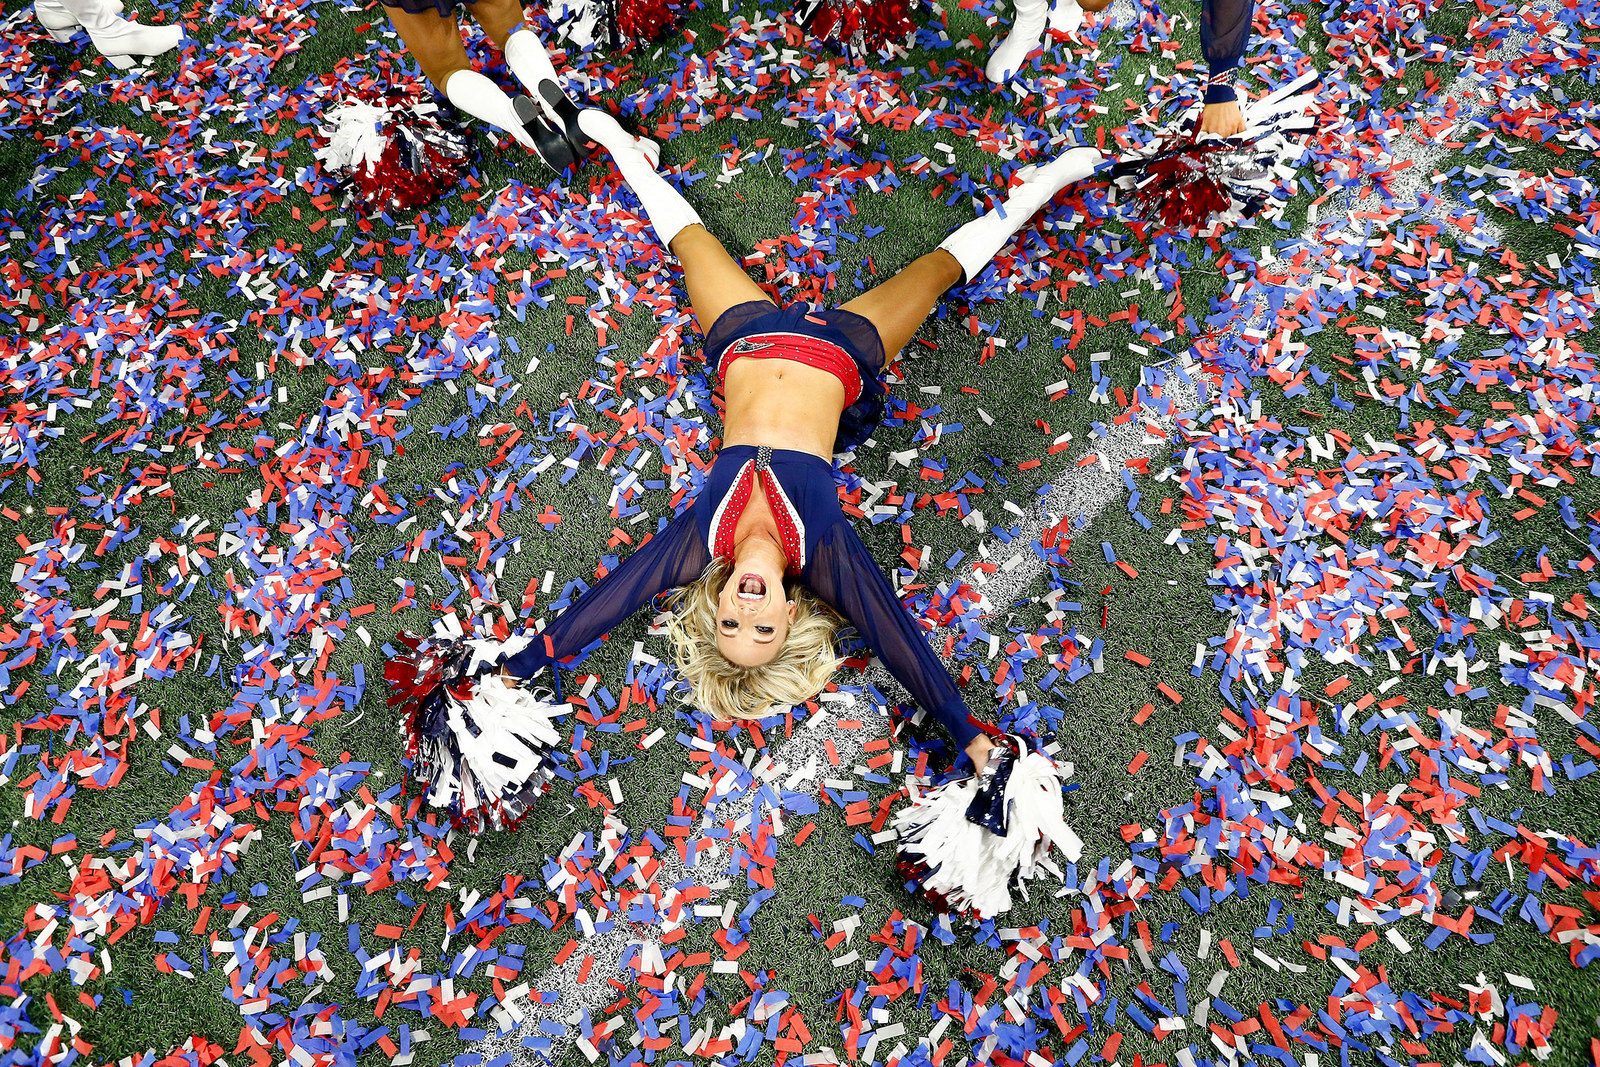 Mandatory Credit: Photo by LARRY W SMITH/EPA-EFE/REX/Shutterstock (10081952ps)A New England Patriots cheerleader lays on the field with graffiti after the New England Patriots defeated the Los Angeles Rams in Super Bowl LIII at Mercedes-Benz Stadium in Atlanta, Georgia, USA, 03 February 2019. Super Bowl LIII, Atlanta, USA - 03 Feb 2019